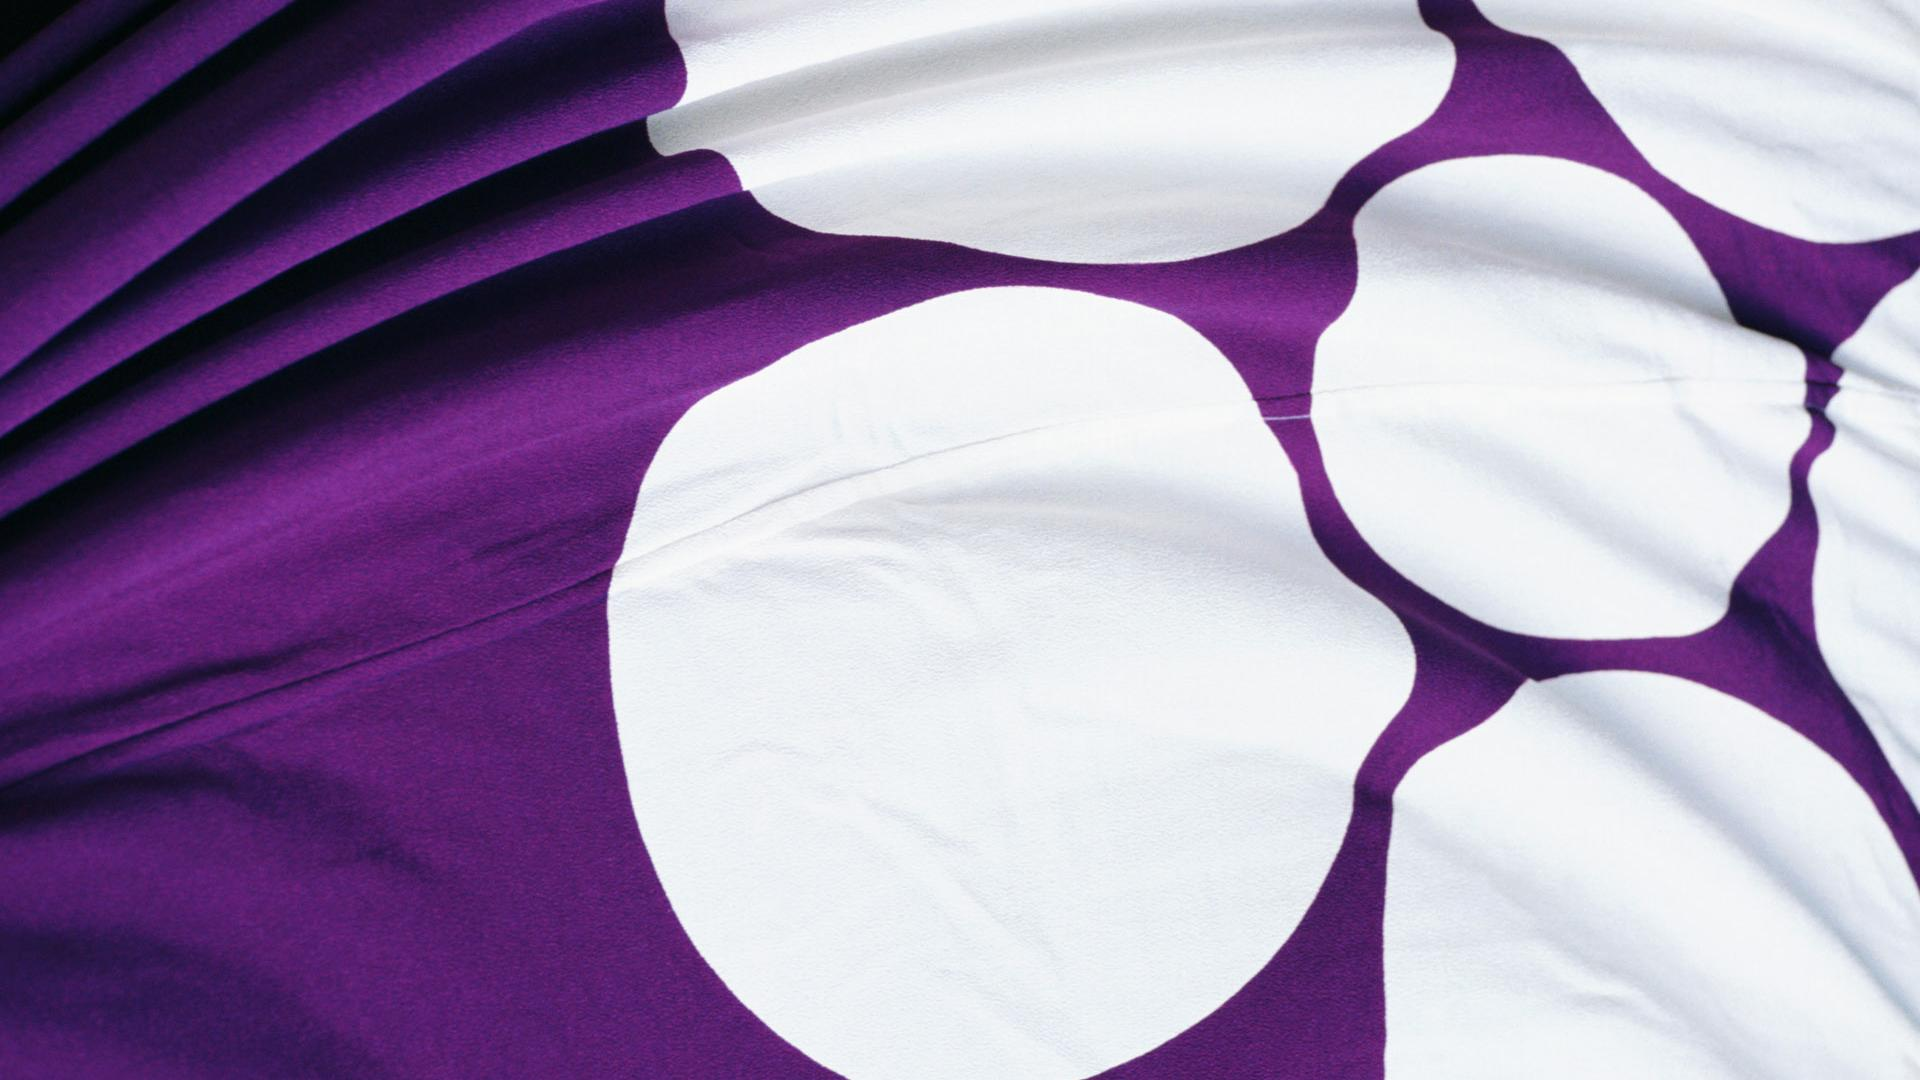 Purple And White Backgrounds wallpaper   870406 1920x1080